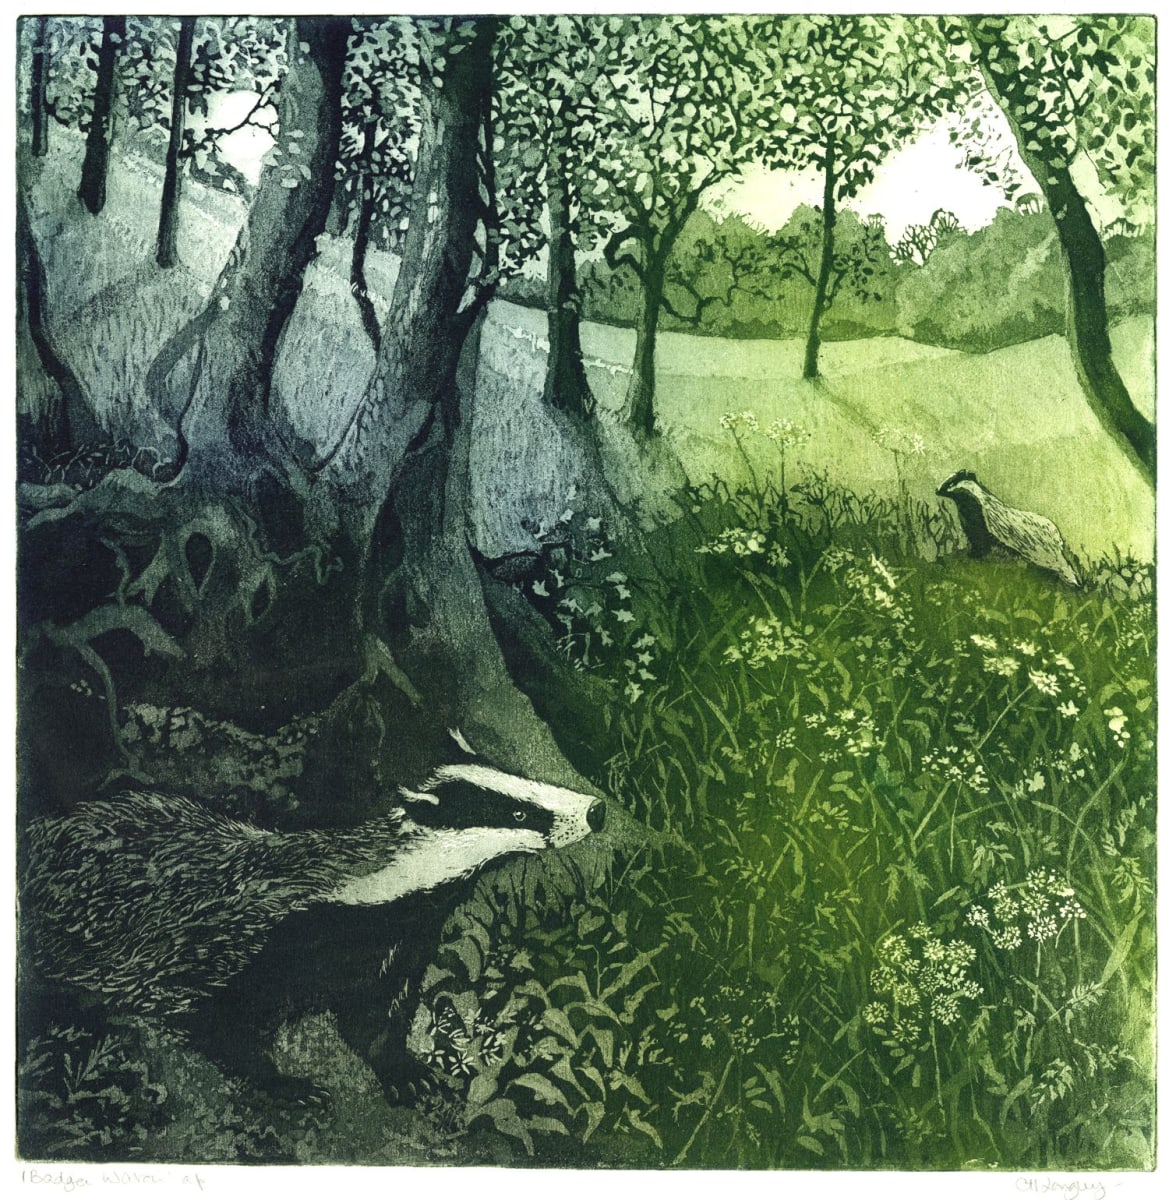 LON302, Badger Watch by Claire Longley